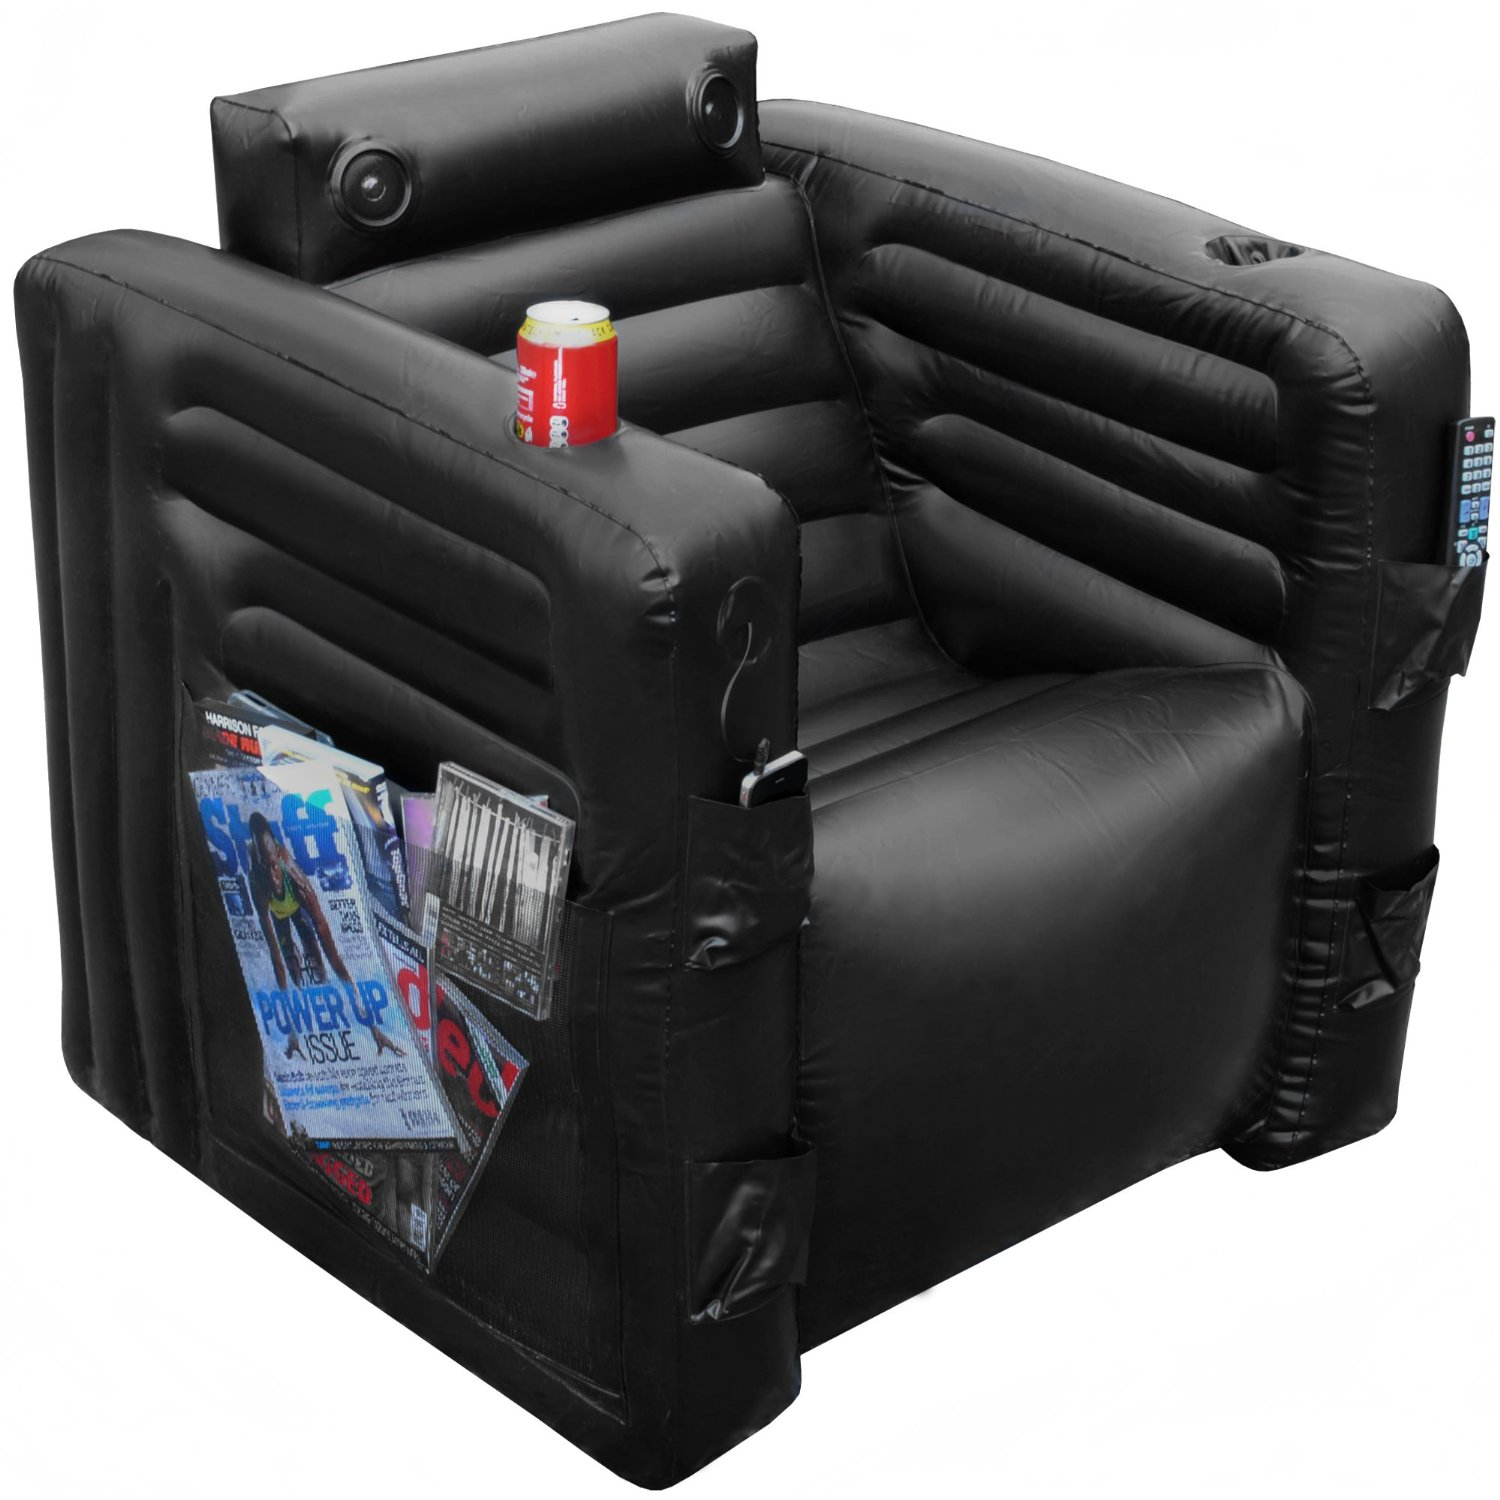 BBTradesales Inflatable Gadget Chair